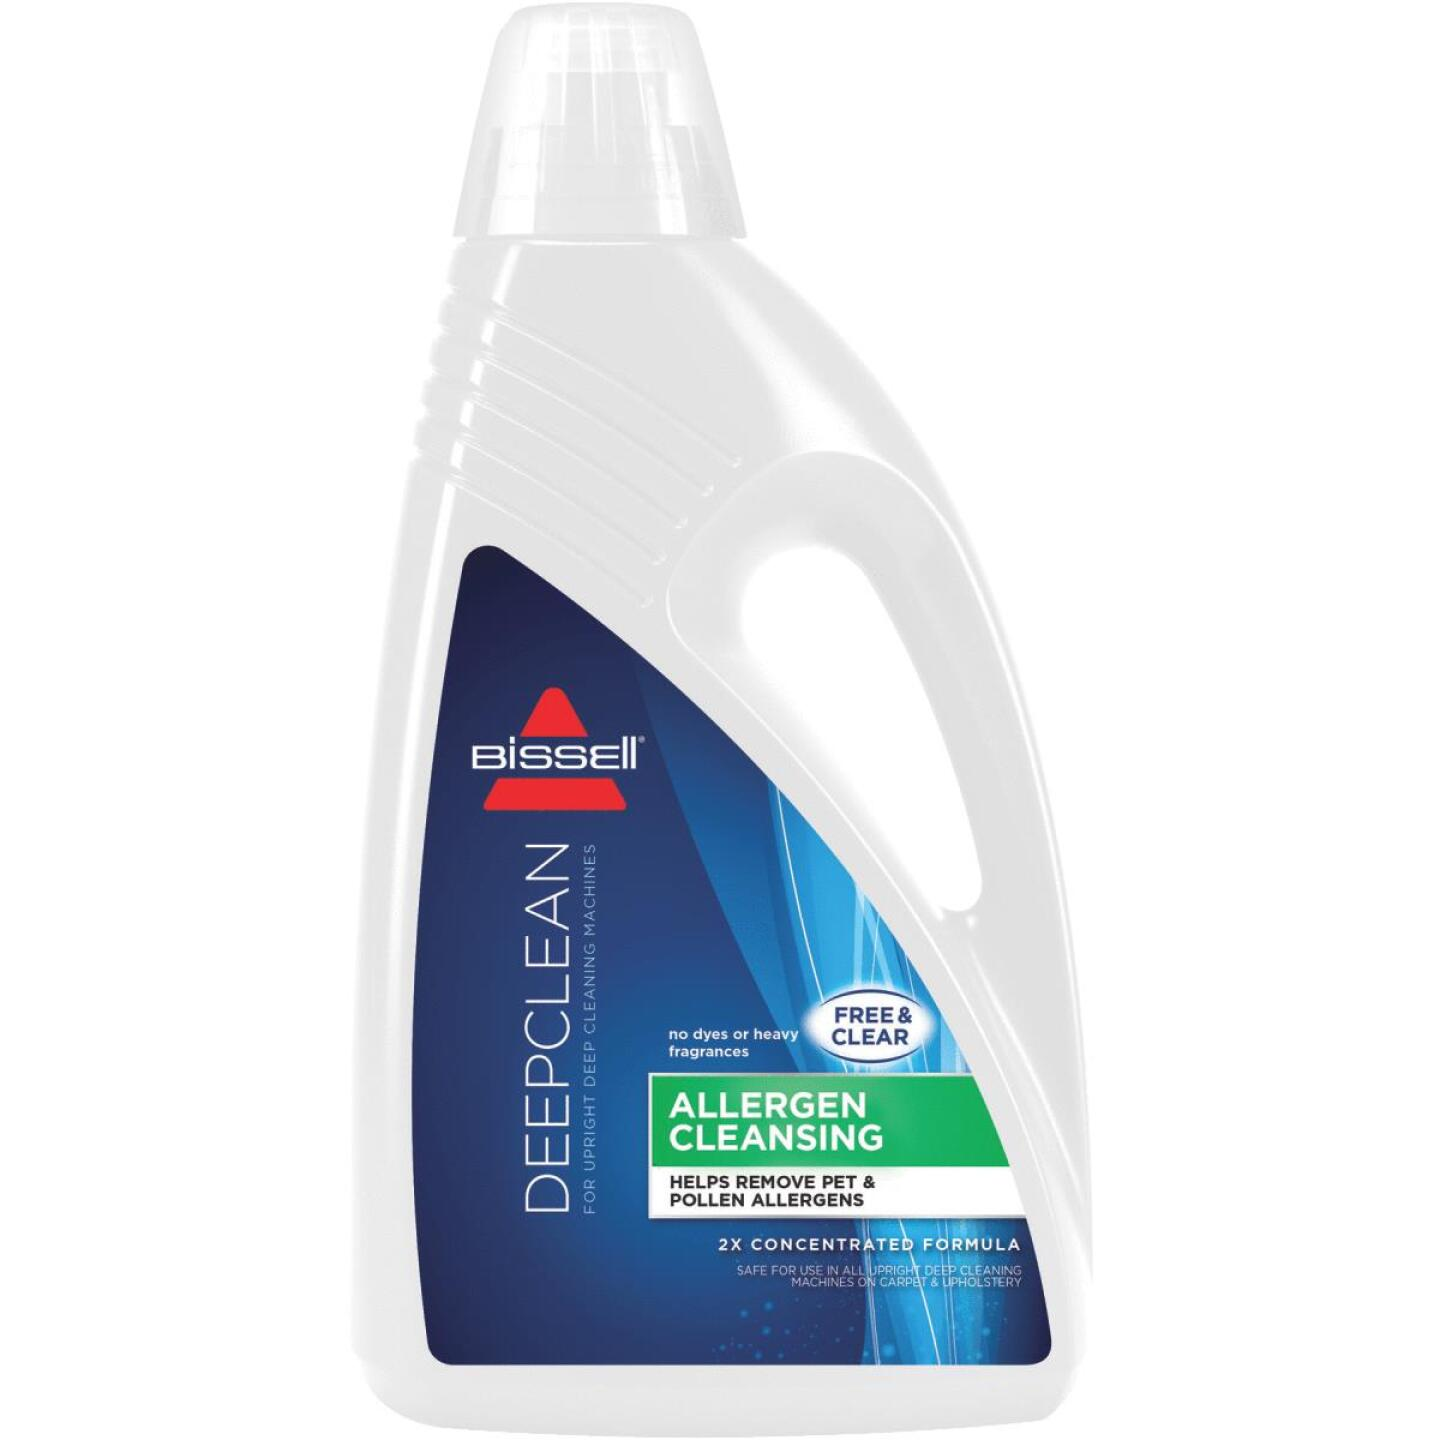 Bissell 60 Oz. Multi-Allergen Removal Upholstery And Carpet Cleaner Image 1